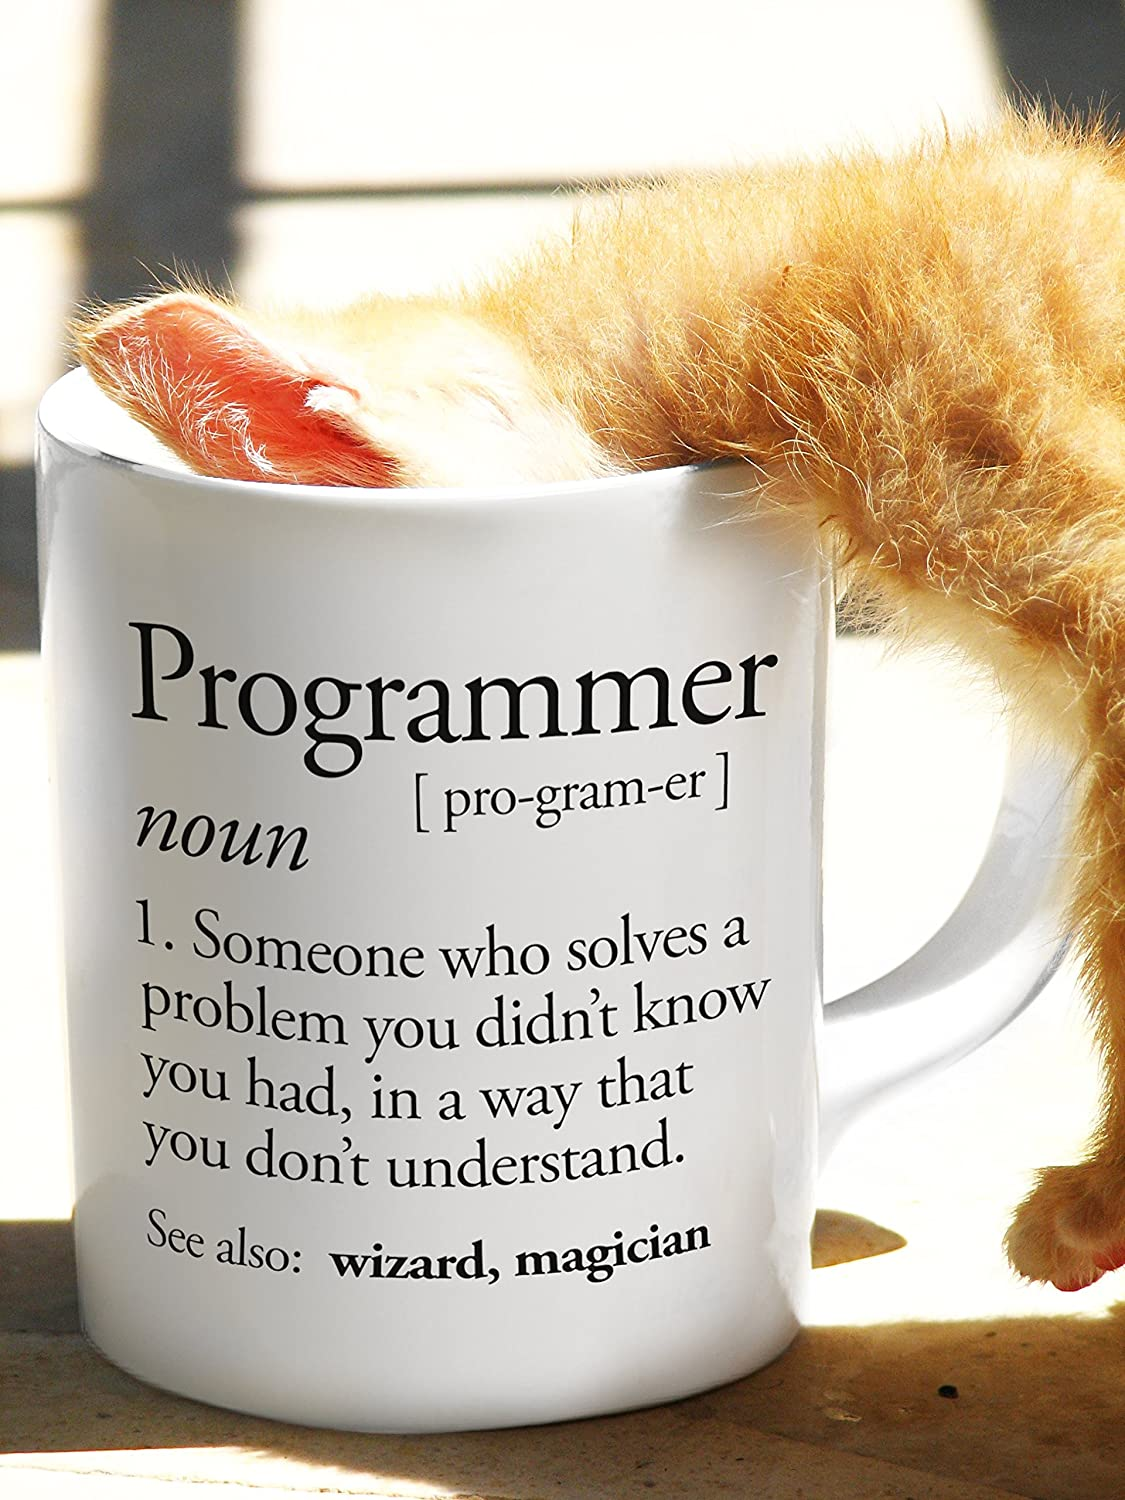 Coders and Software Developers! A Mug For the Computing Programmer Funny Programmer Defintion Meaning Gift Computer Science Geeks